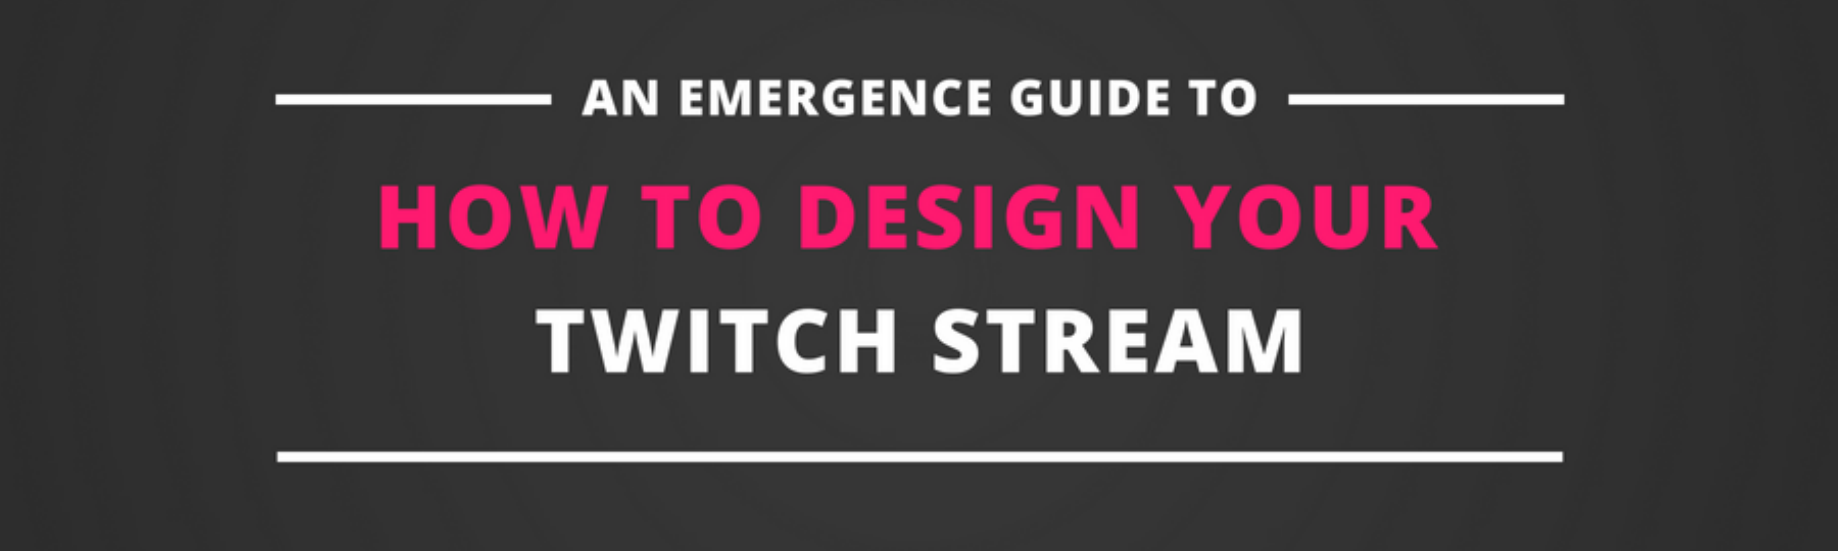 How To Design Your Twitch Stream - The Emergence - Medium